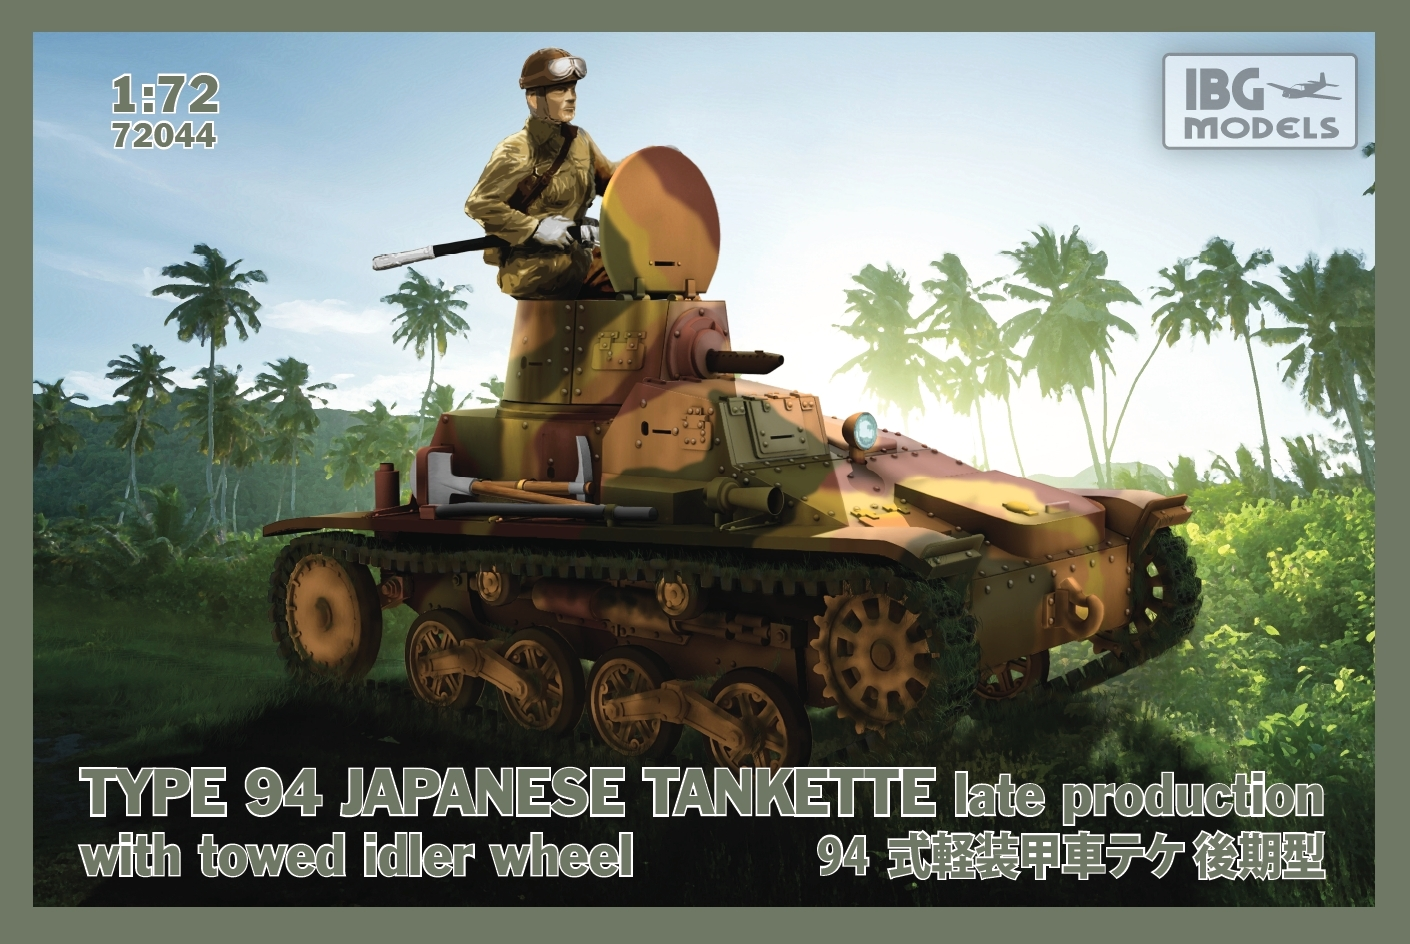 TYPE 94 Japanese Tankette - late, with towed idler wheel